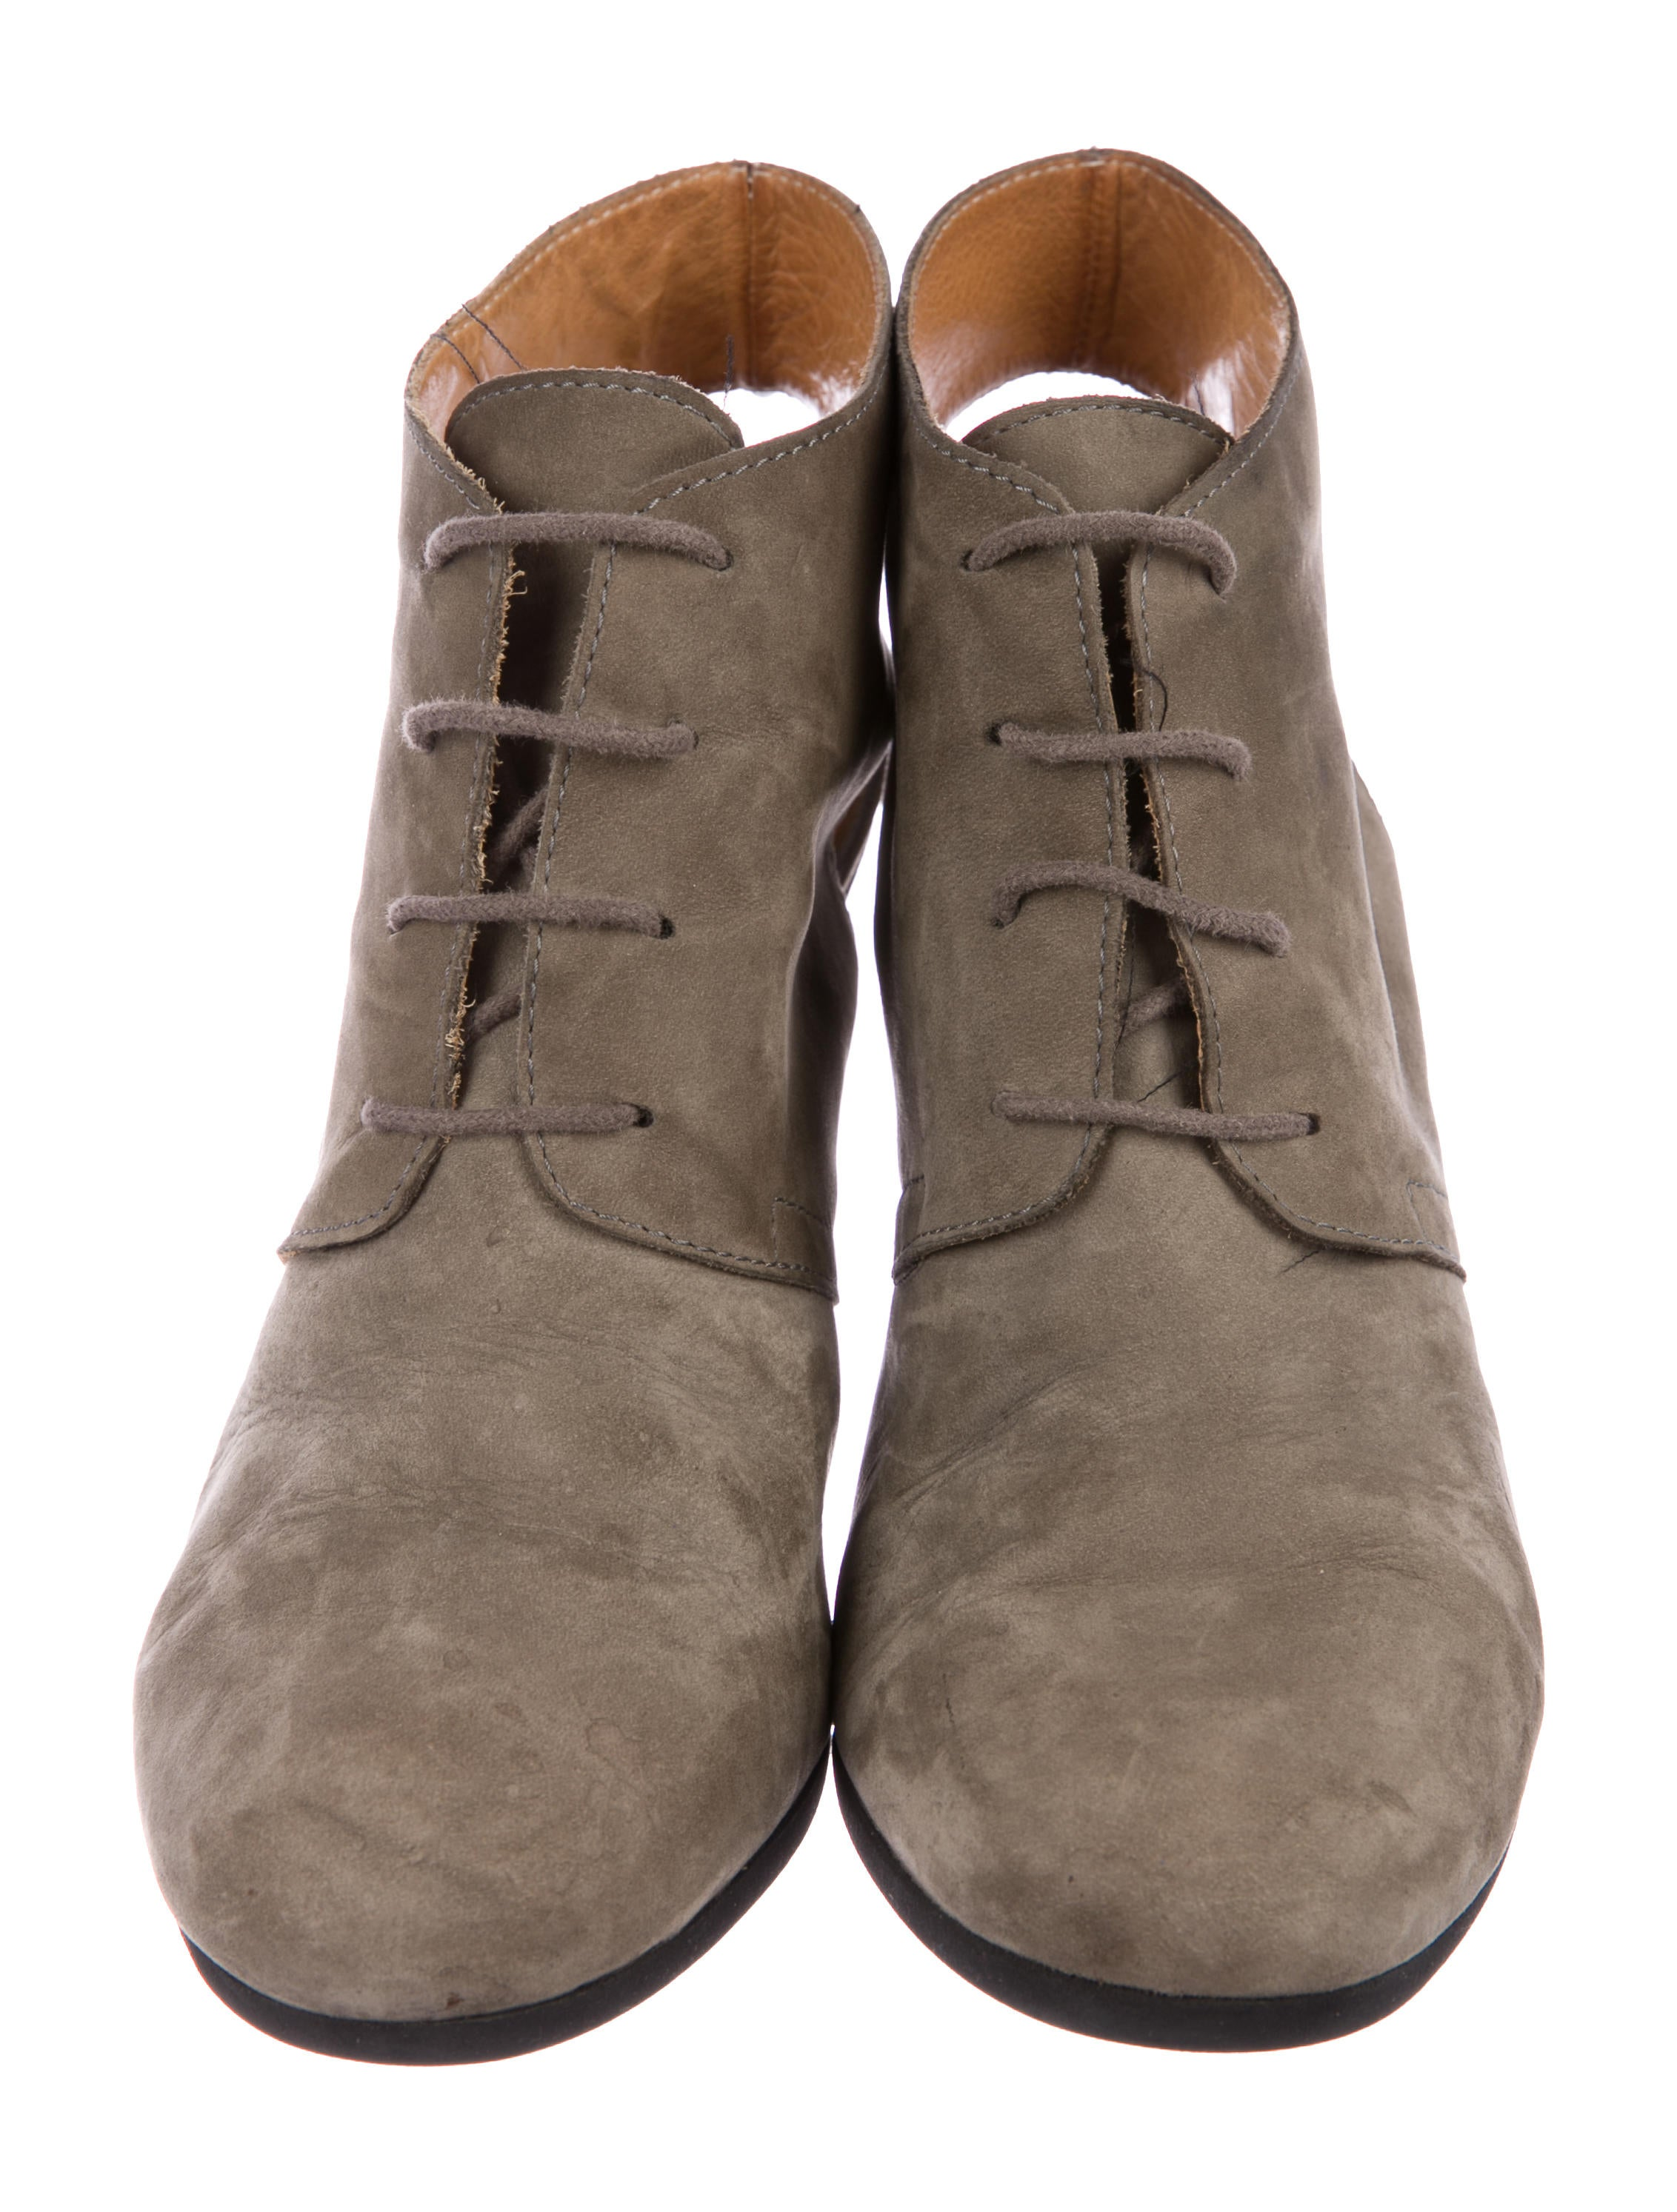 buy cheap cost ebay cheap online MM6 Maison Margiela Suede Slingback Oxfords buy cheap low price fee shipping low cost sale online best deals f48yi4as4A